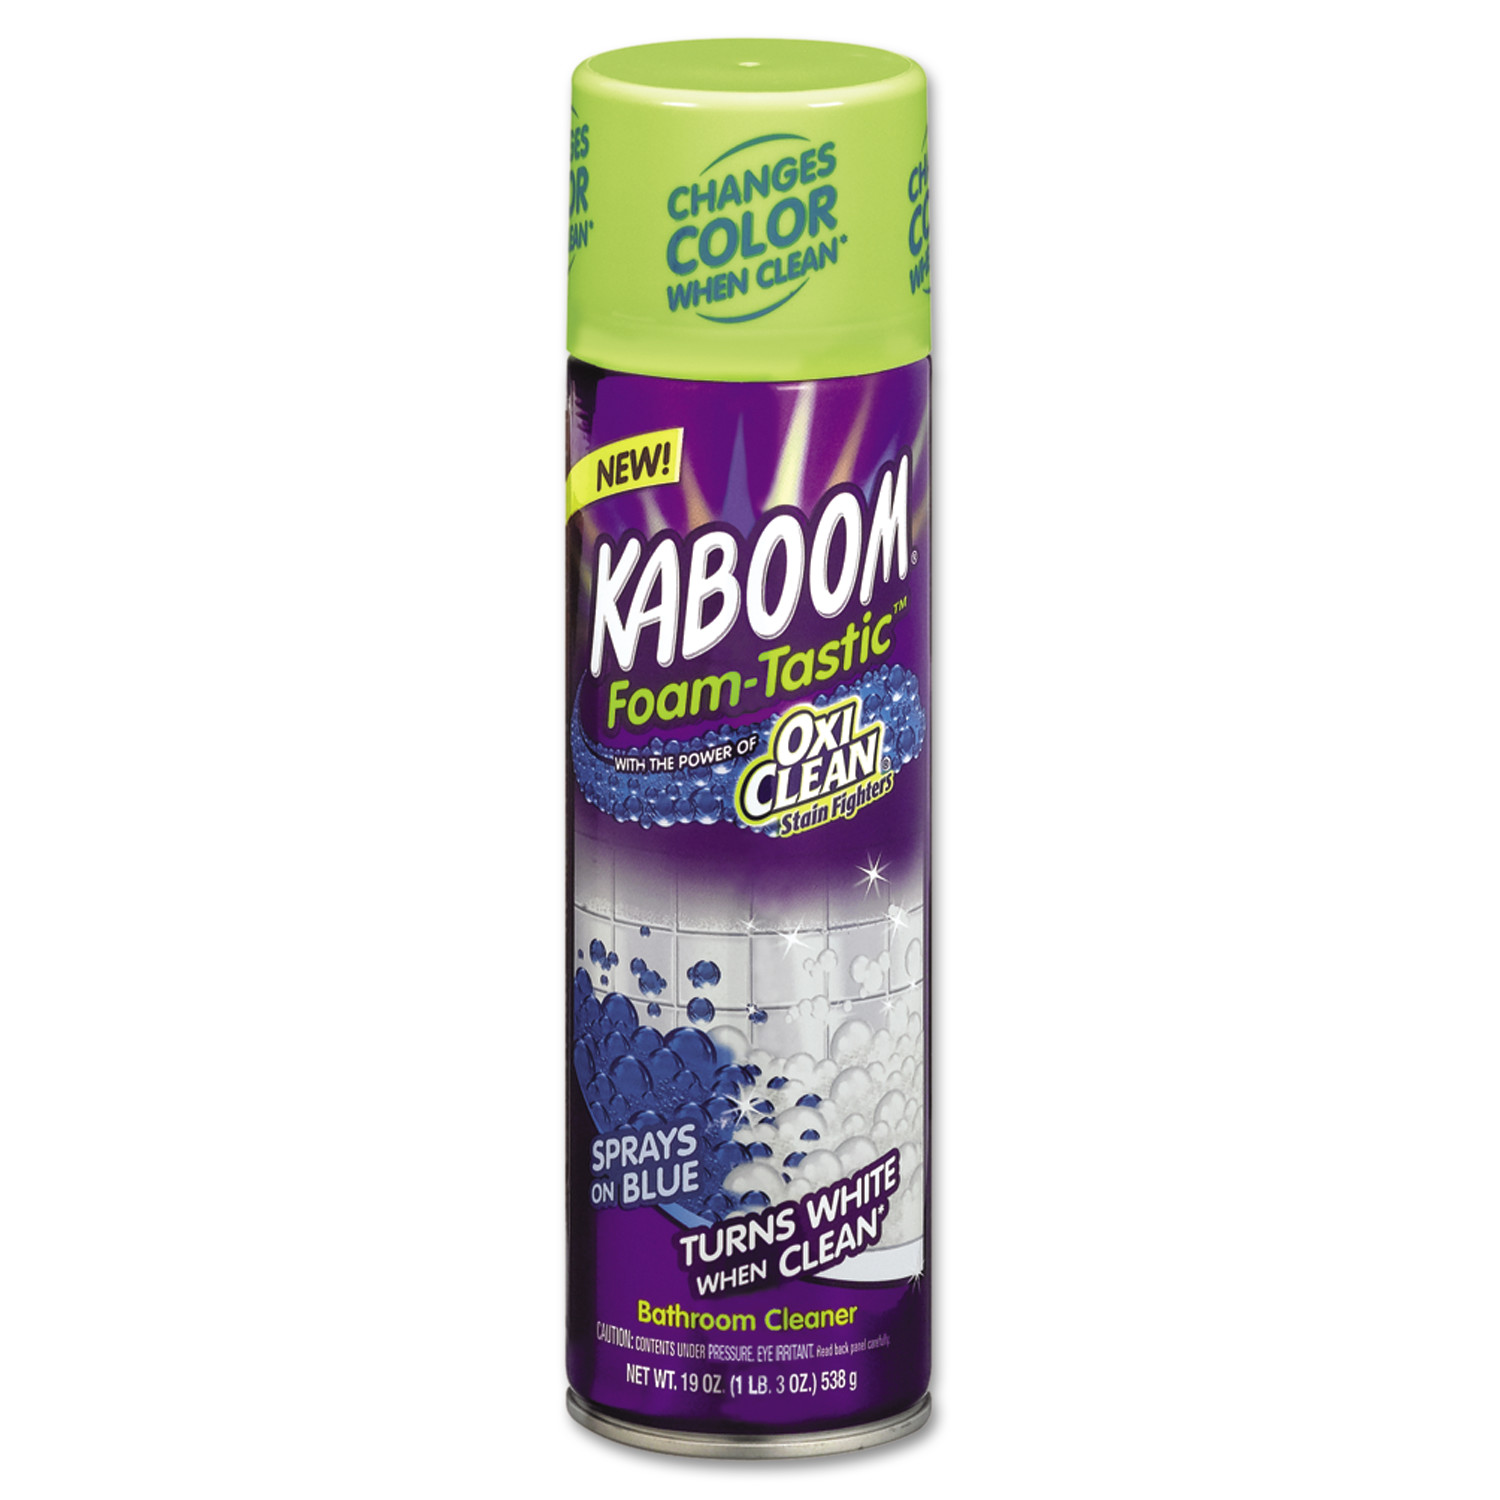 Bathroom Cleaner kaboom foamtastic bathroom cleaner, fresh scent, 19oz spray can